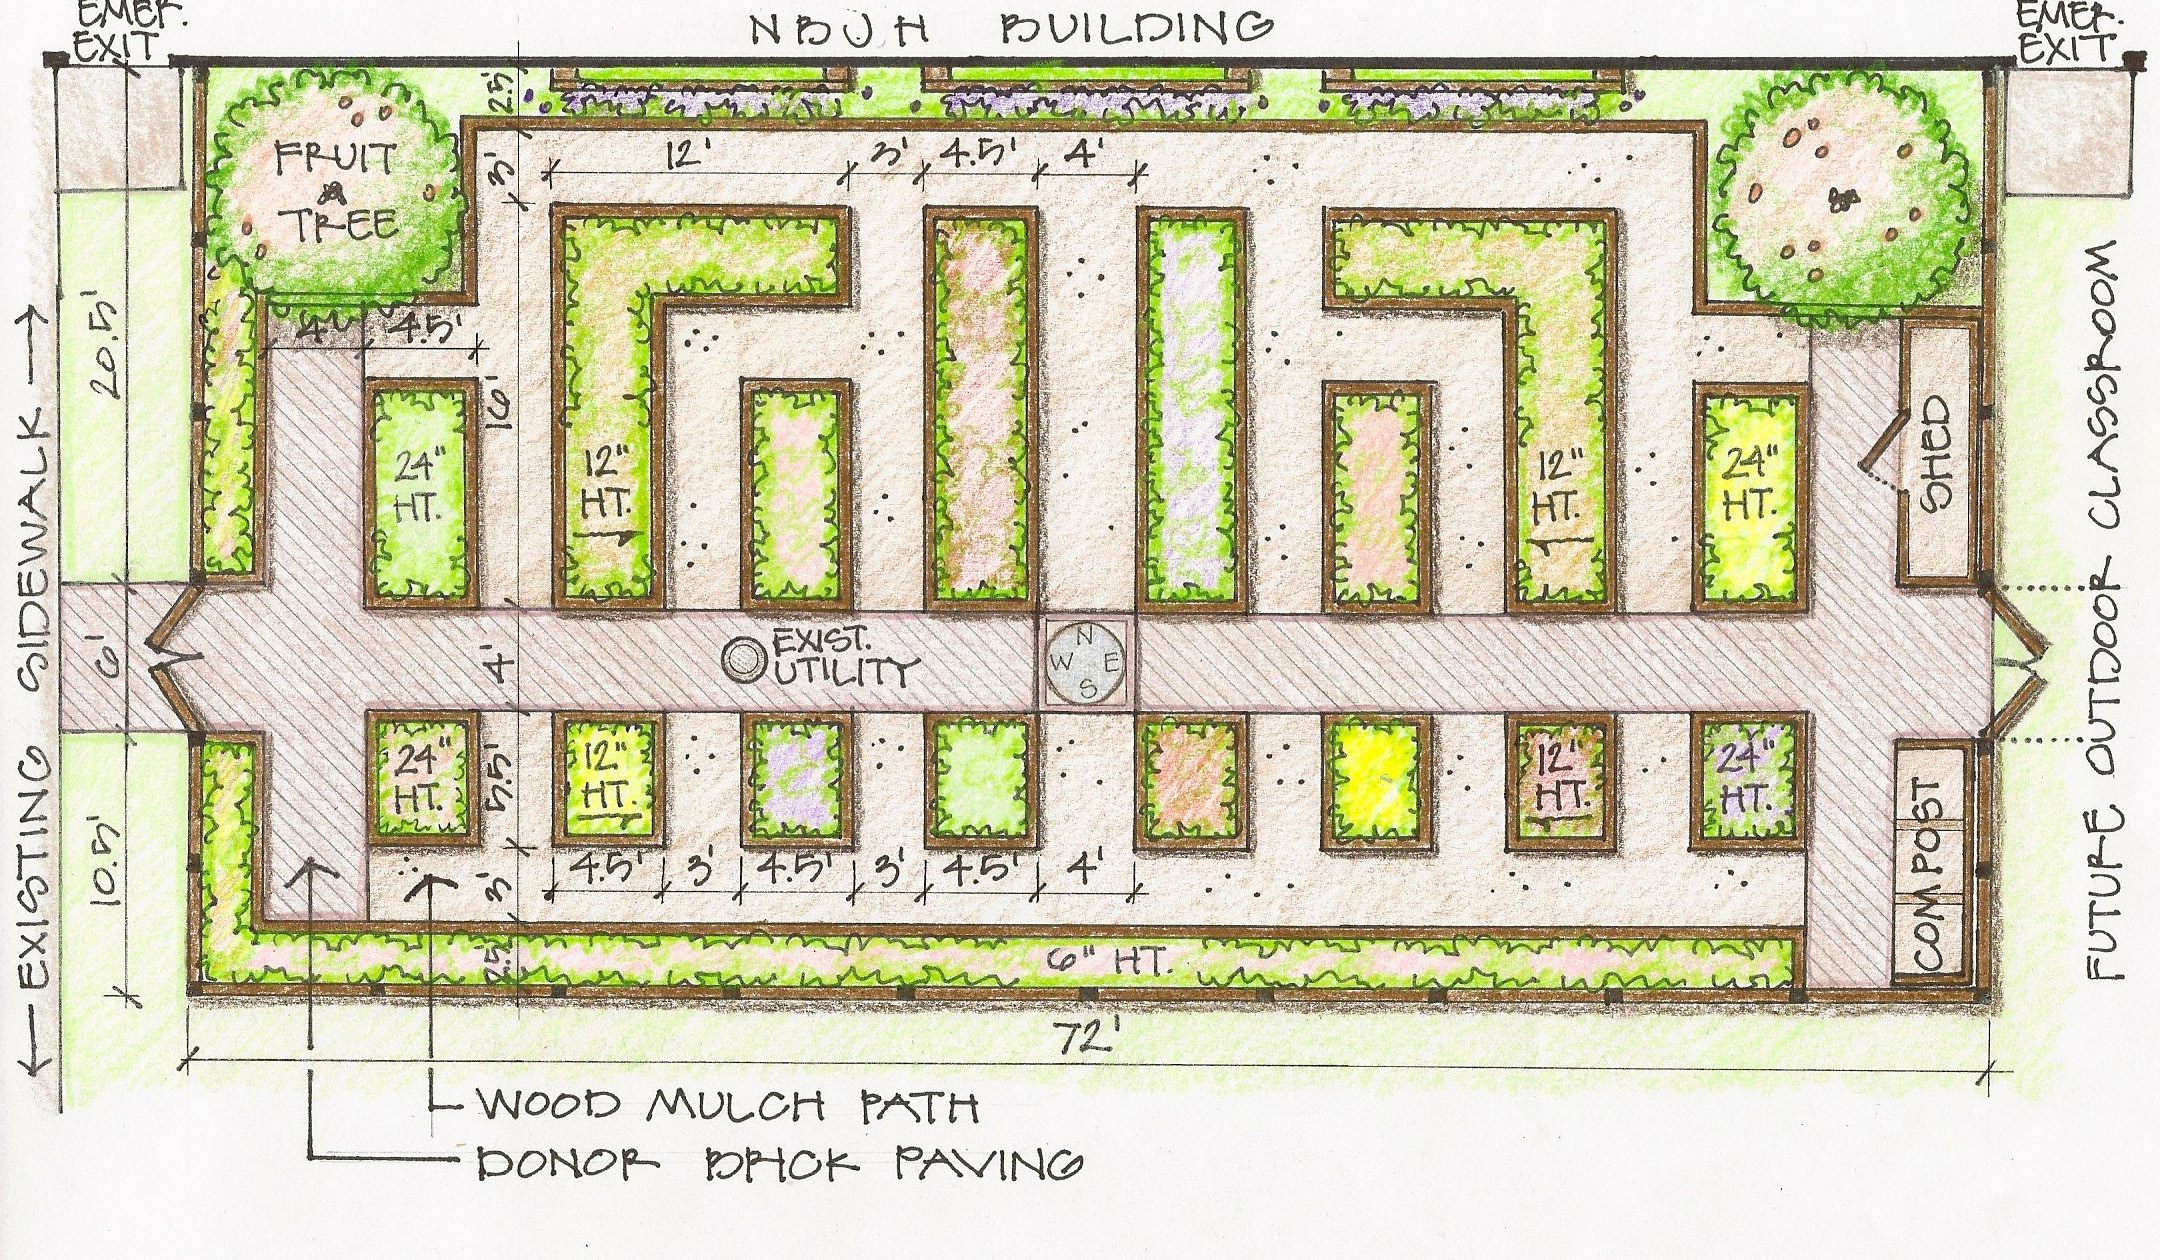 Raised bed vegetable garden layout plans garden design for Garden layouts designs